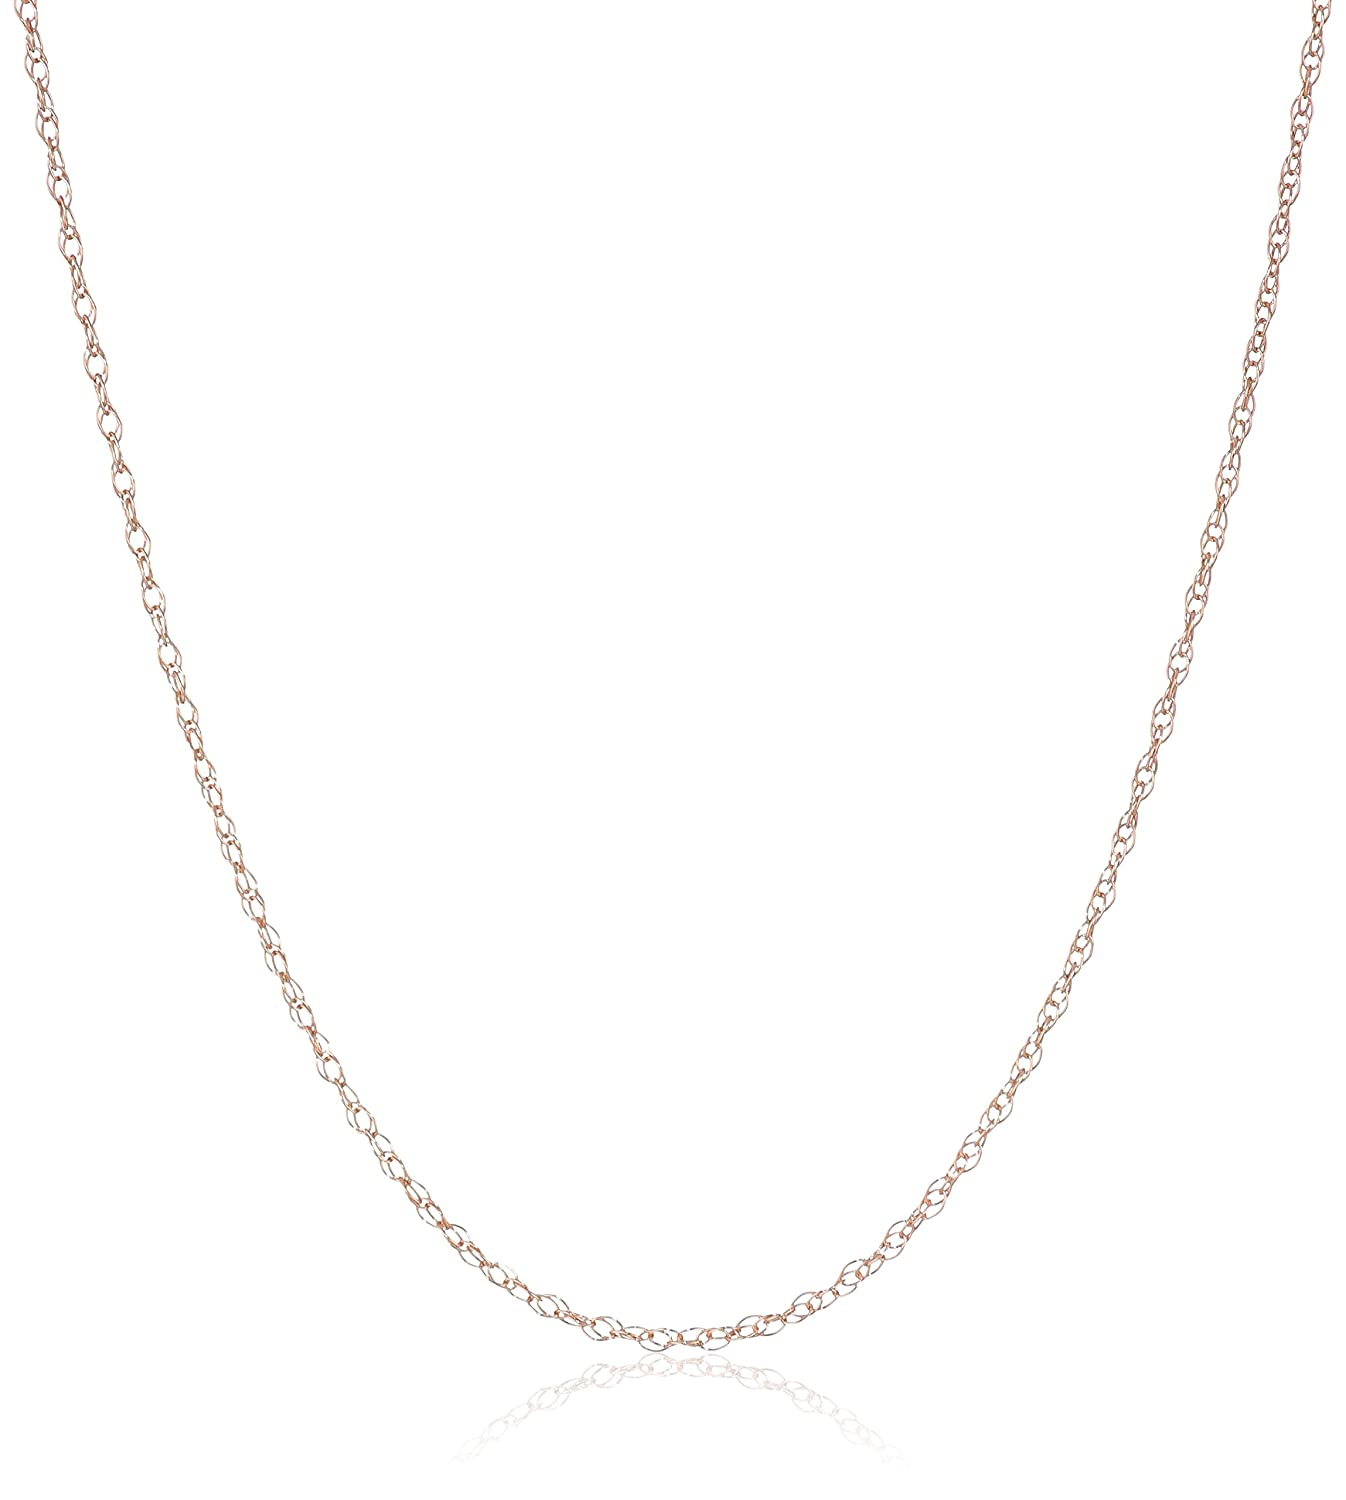 14k Lightweight Double Link Chain 0.8mm Chain Necklace 18 Amazon Collection SK4118-18PKA